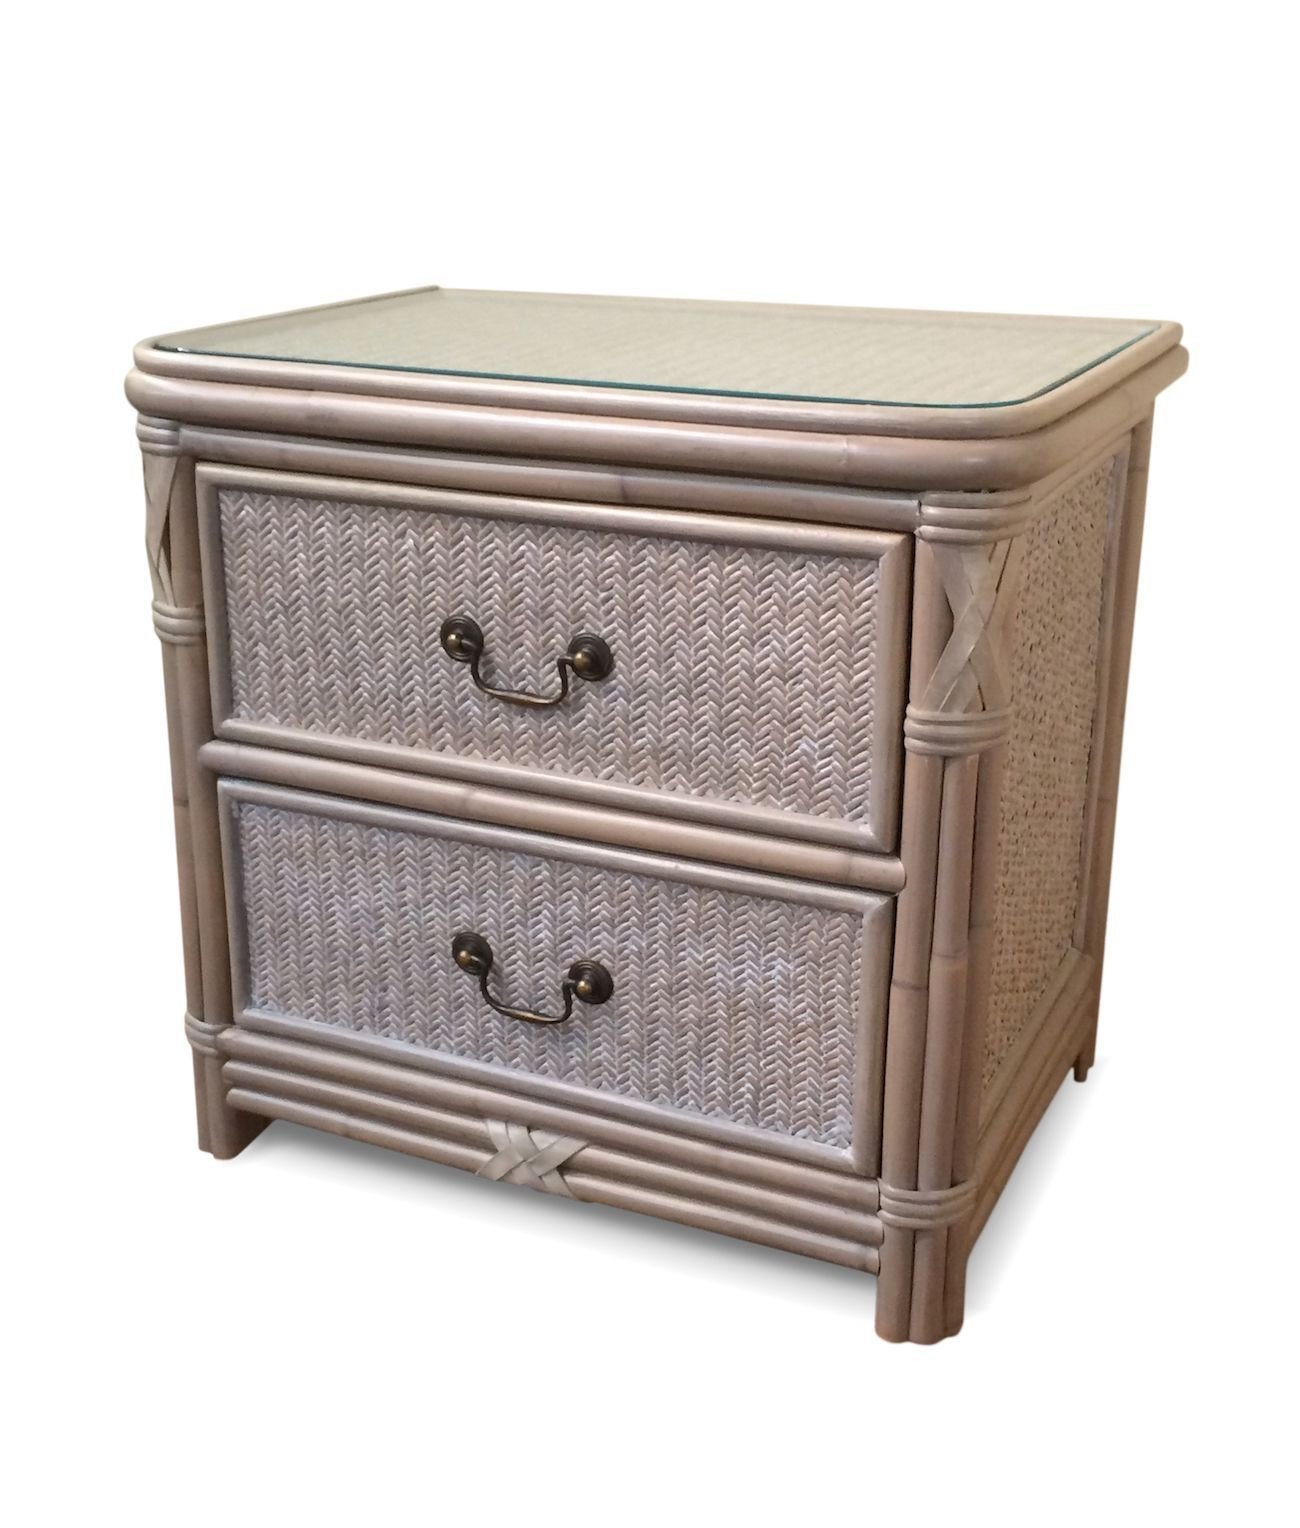 White Wicker Bedroom Furniture Awesome the Manor Rattan 2 Drawer Nightstand